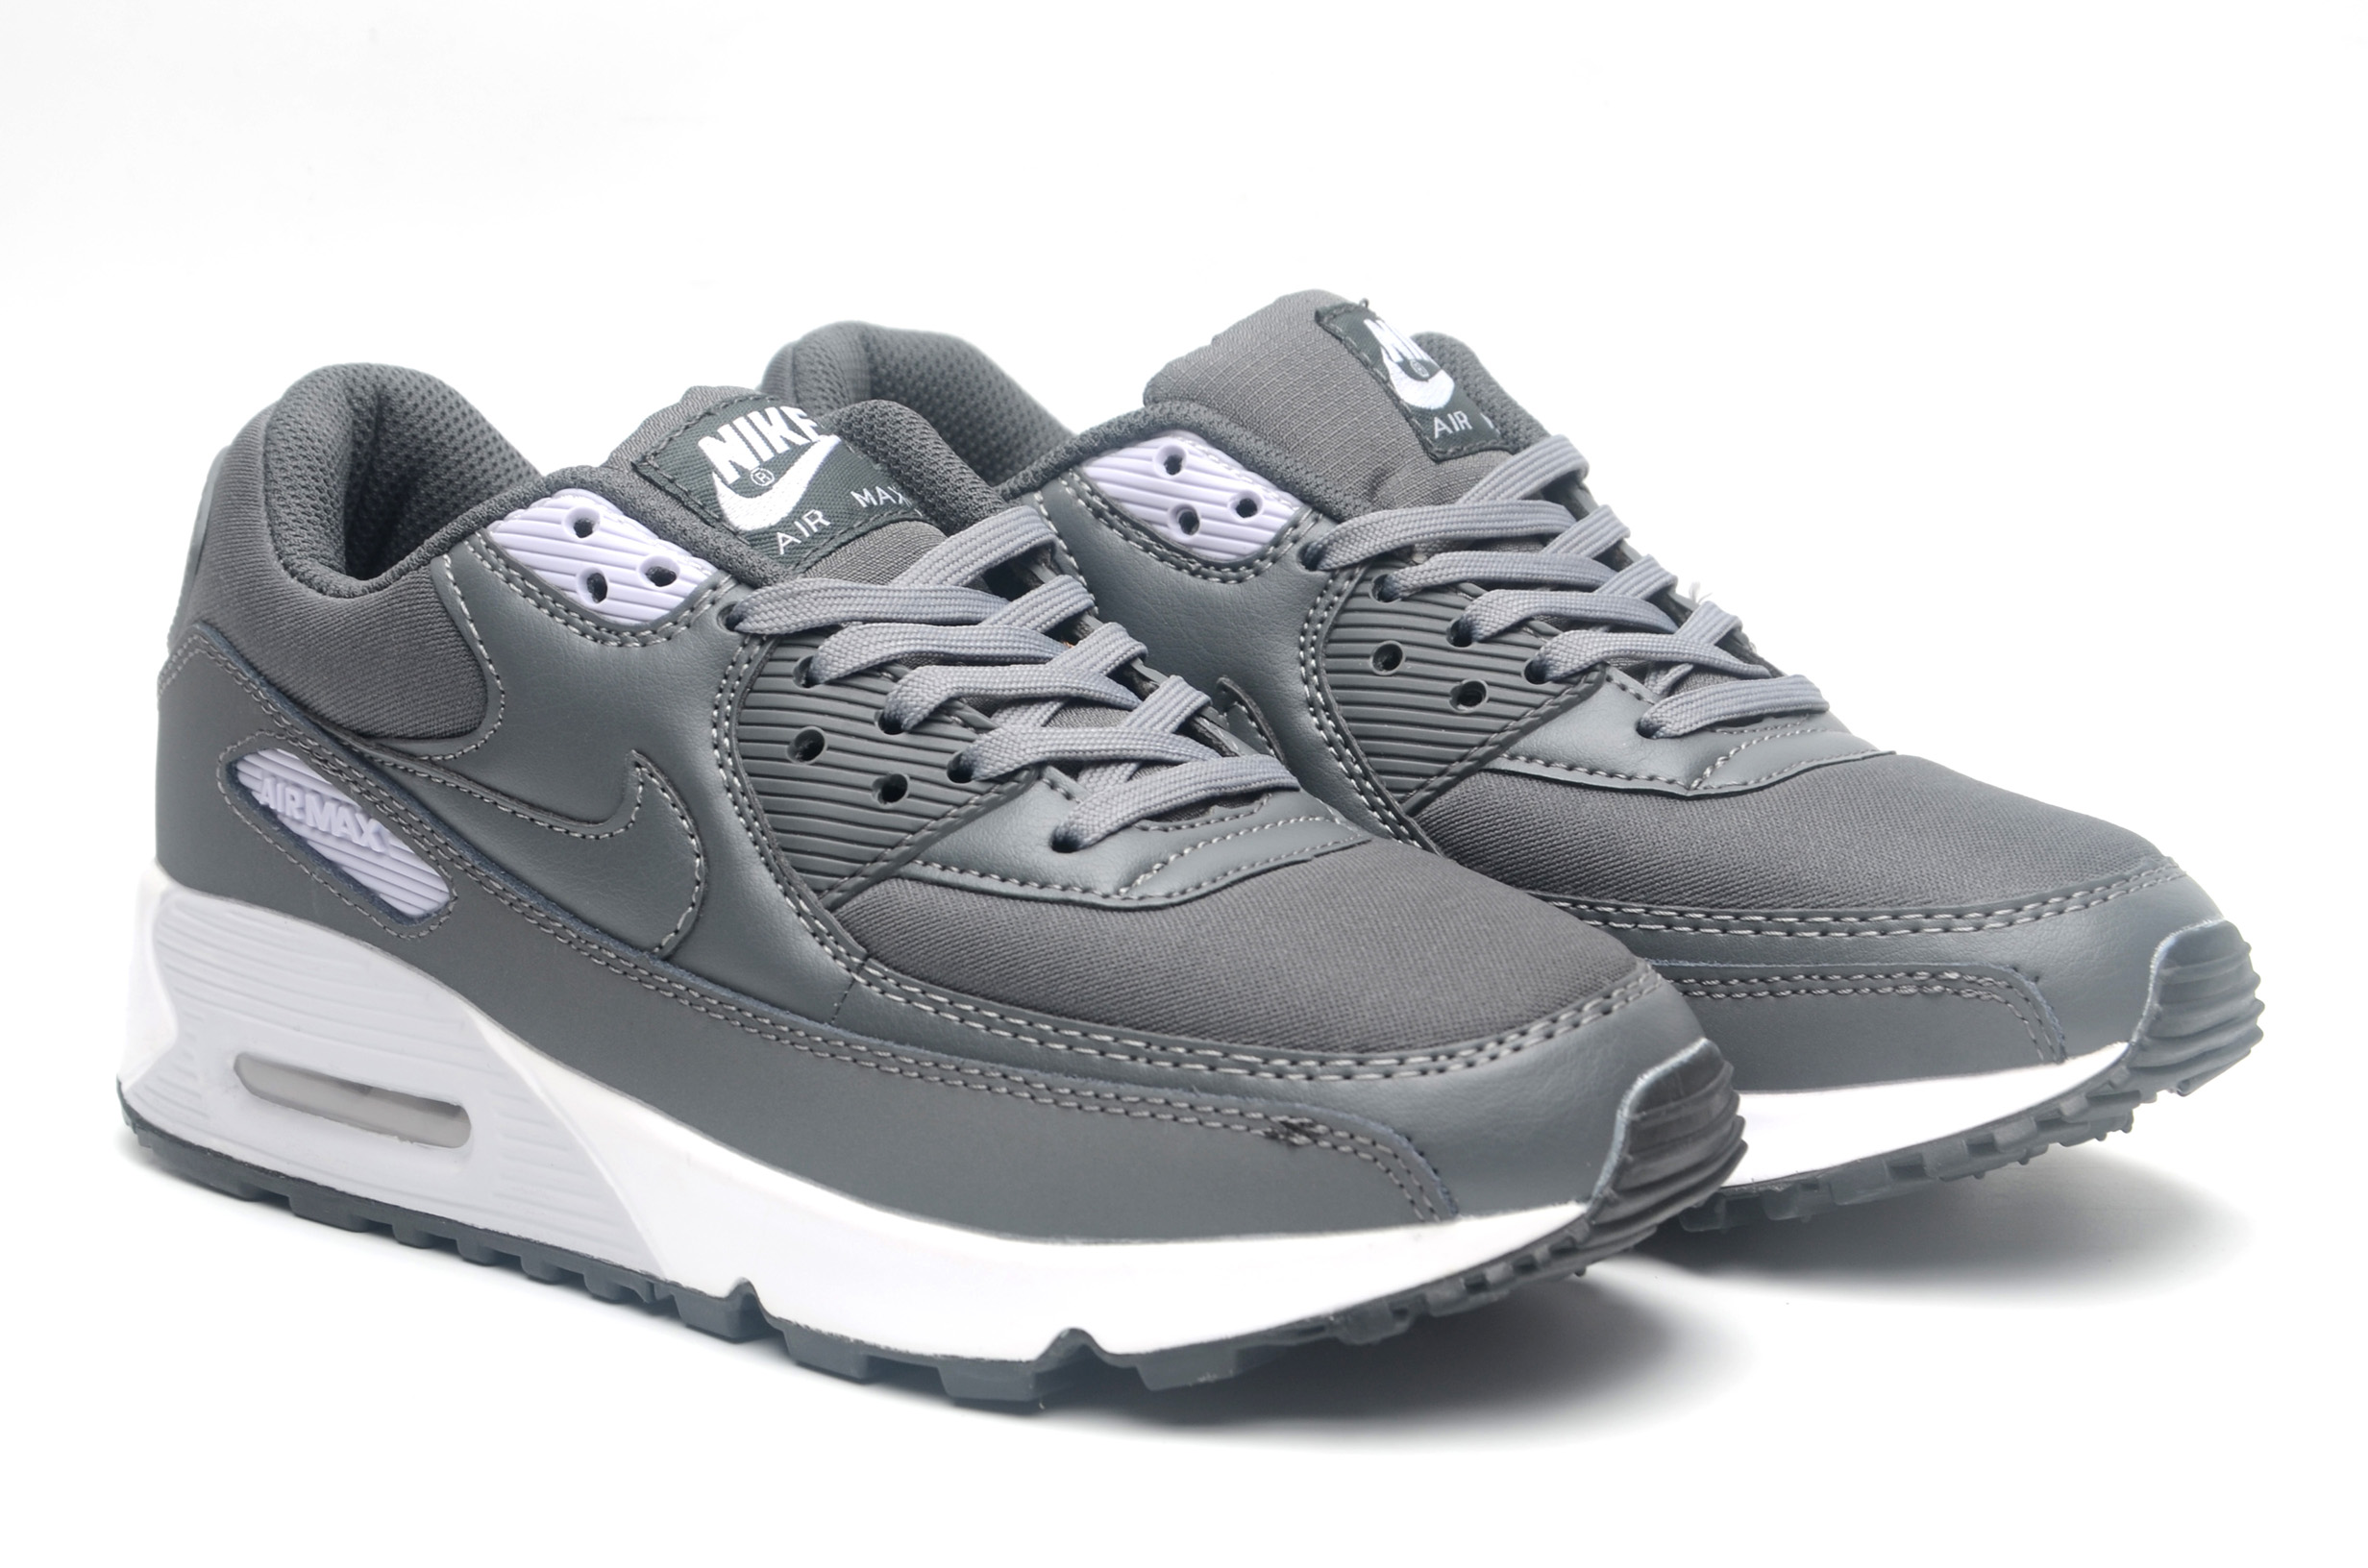 Women's Running weapon Air Max 90 Shoes 027